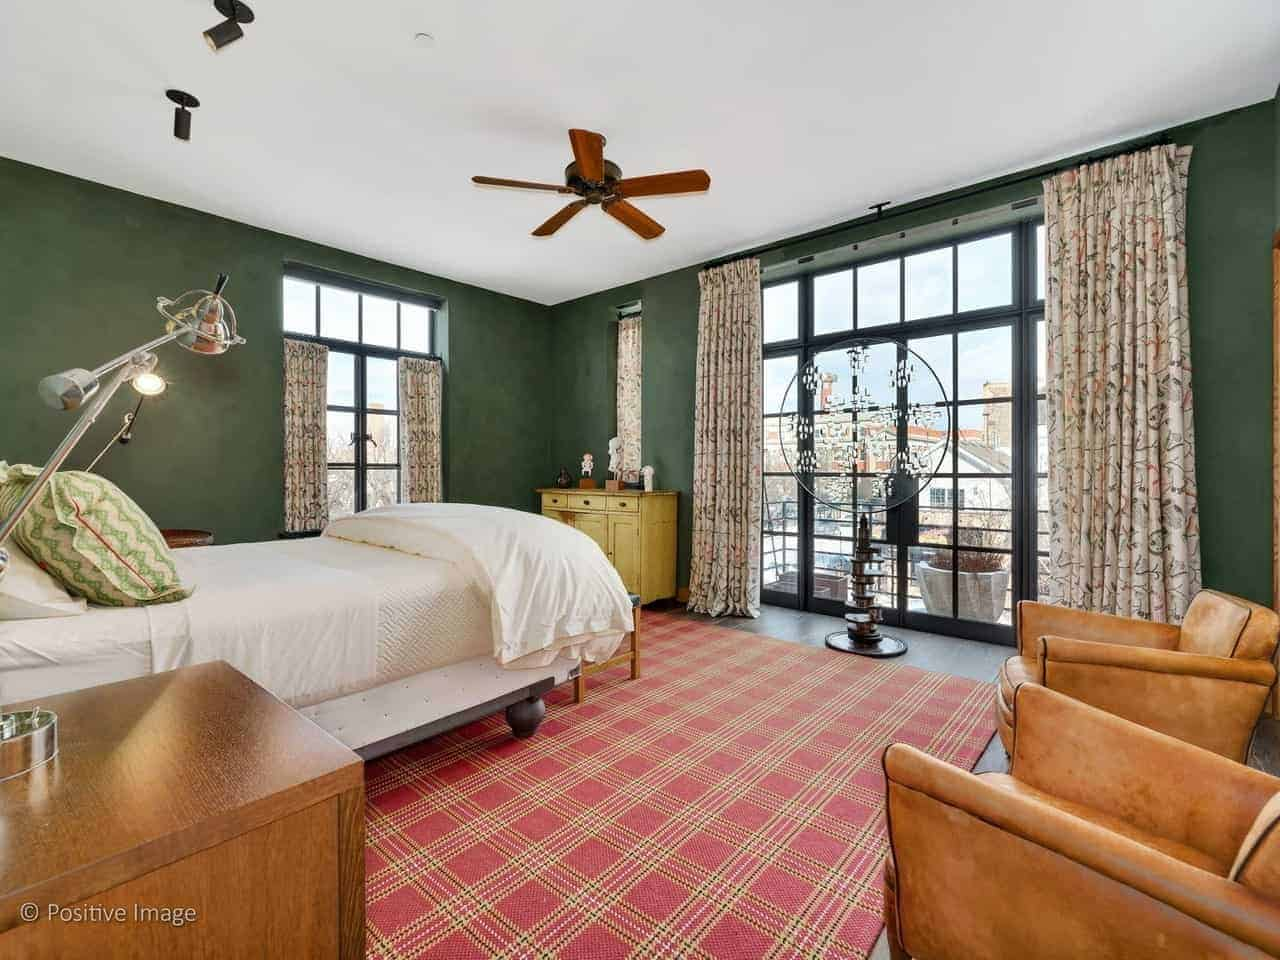 This industrial-style primary bedroom has dark green walls that are contrasted by the large French window and French glass doors. These are paired with floral curtains that pairs with the red plaid area rug to bring a dash of color to the bedroom.